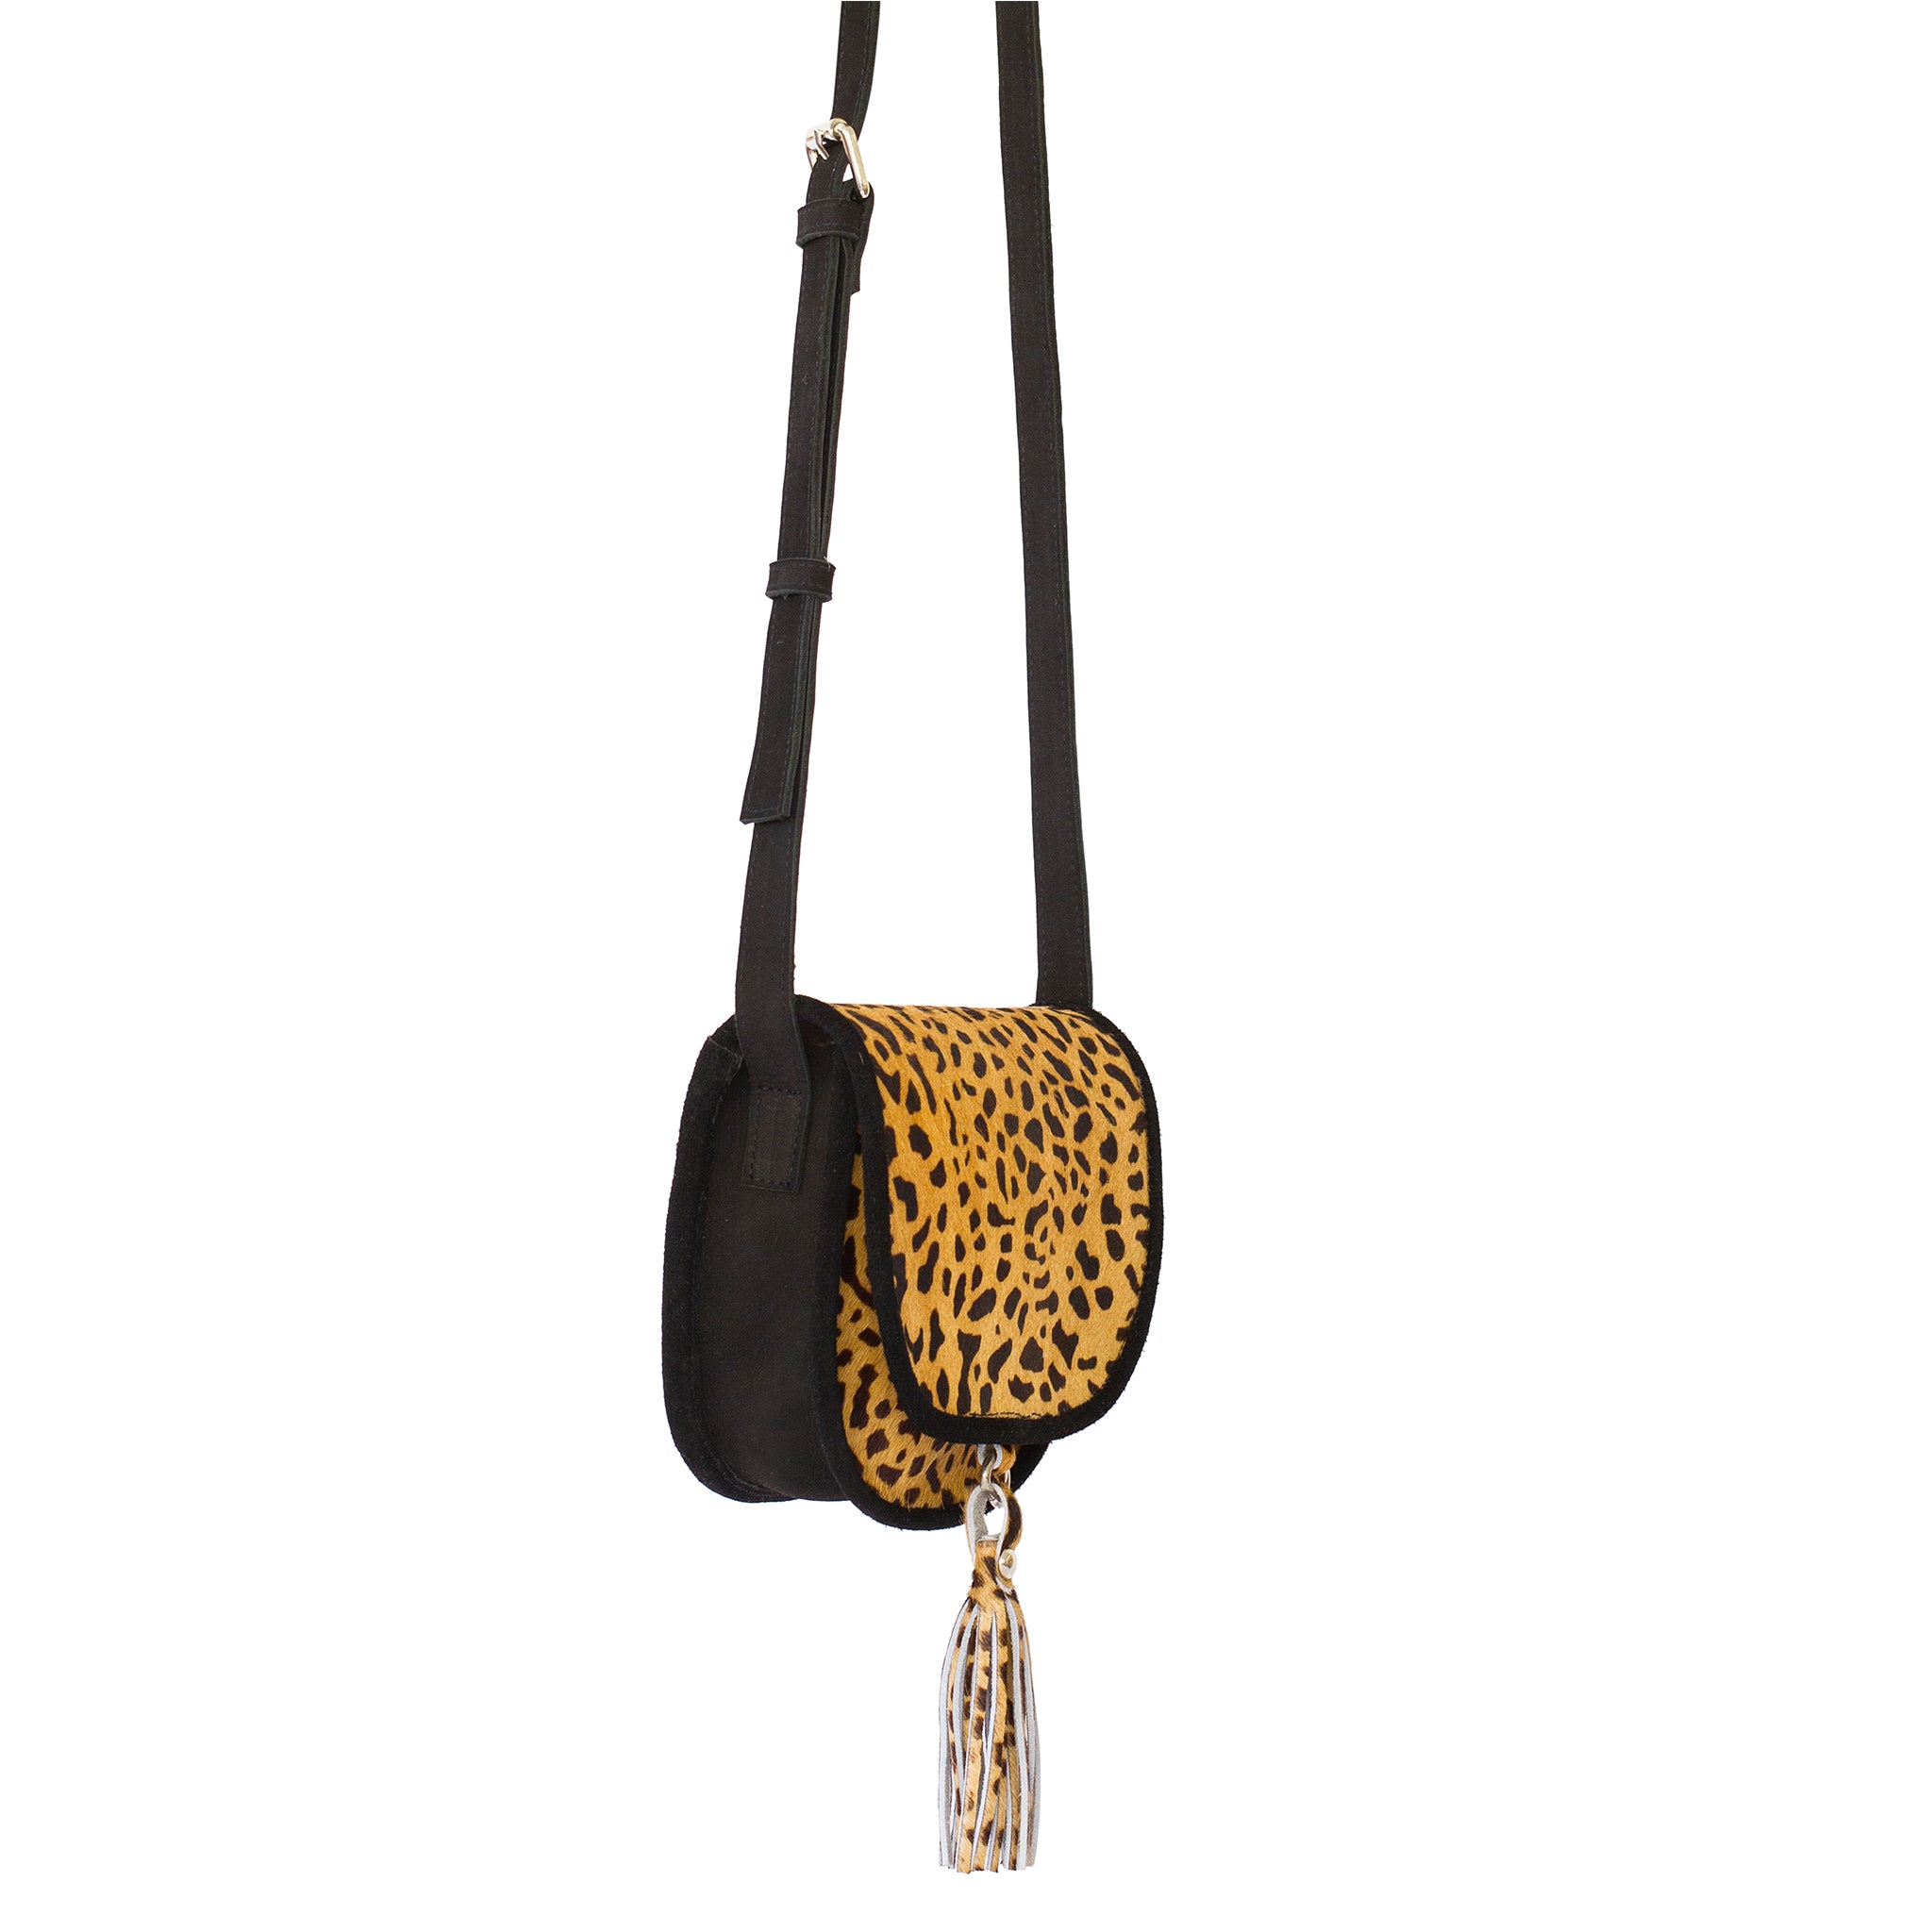 Saddle Crossbody Shoulder Bag-Leopard Print Genuine Calf Hair Leather